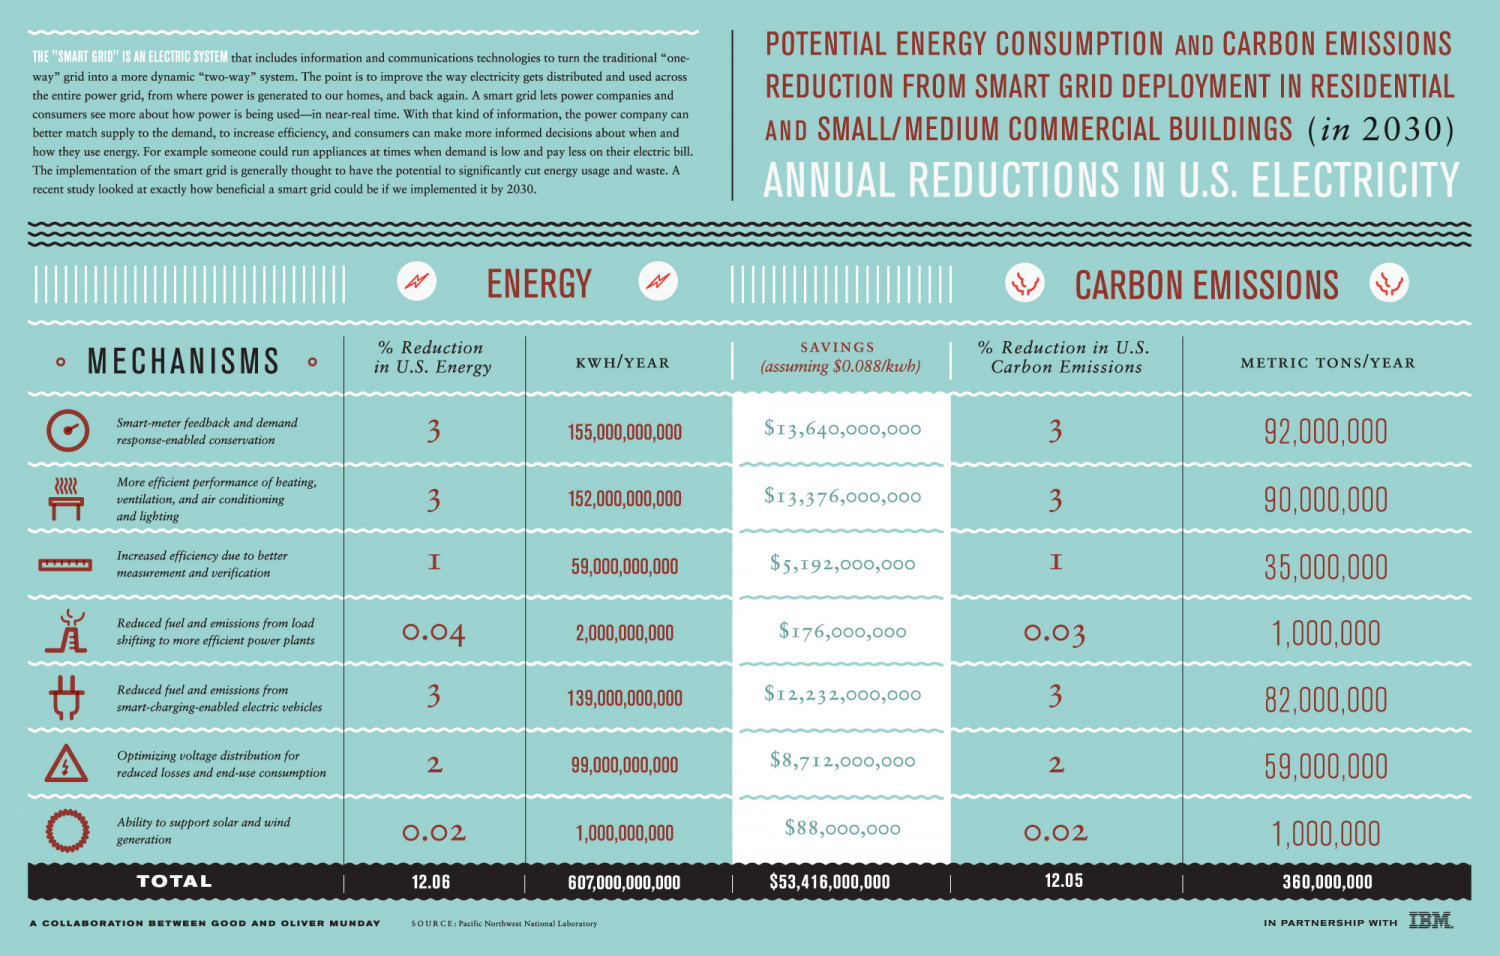 Annual Reductions in US Electricity Infographic